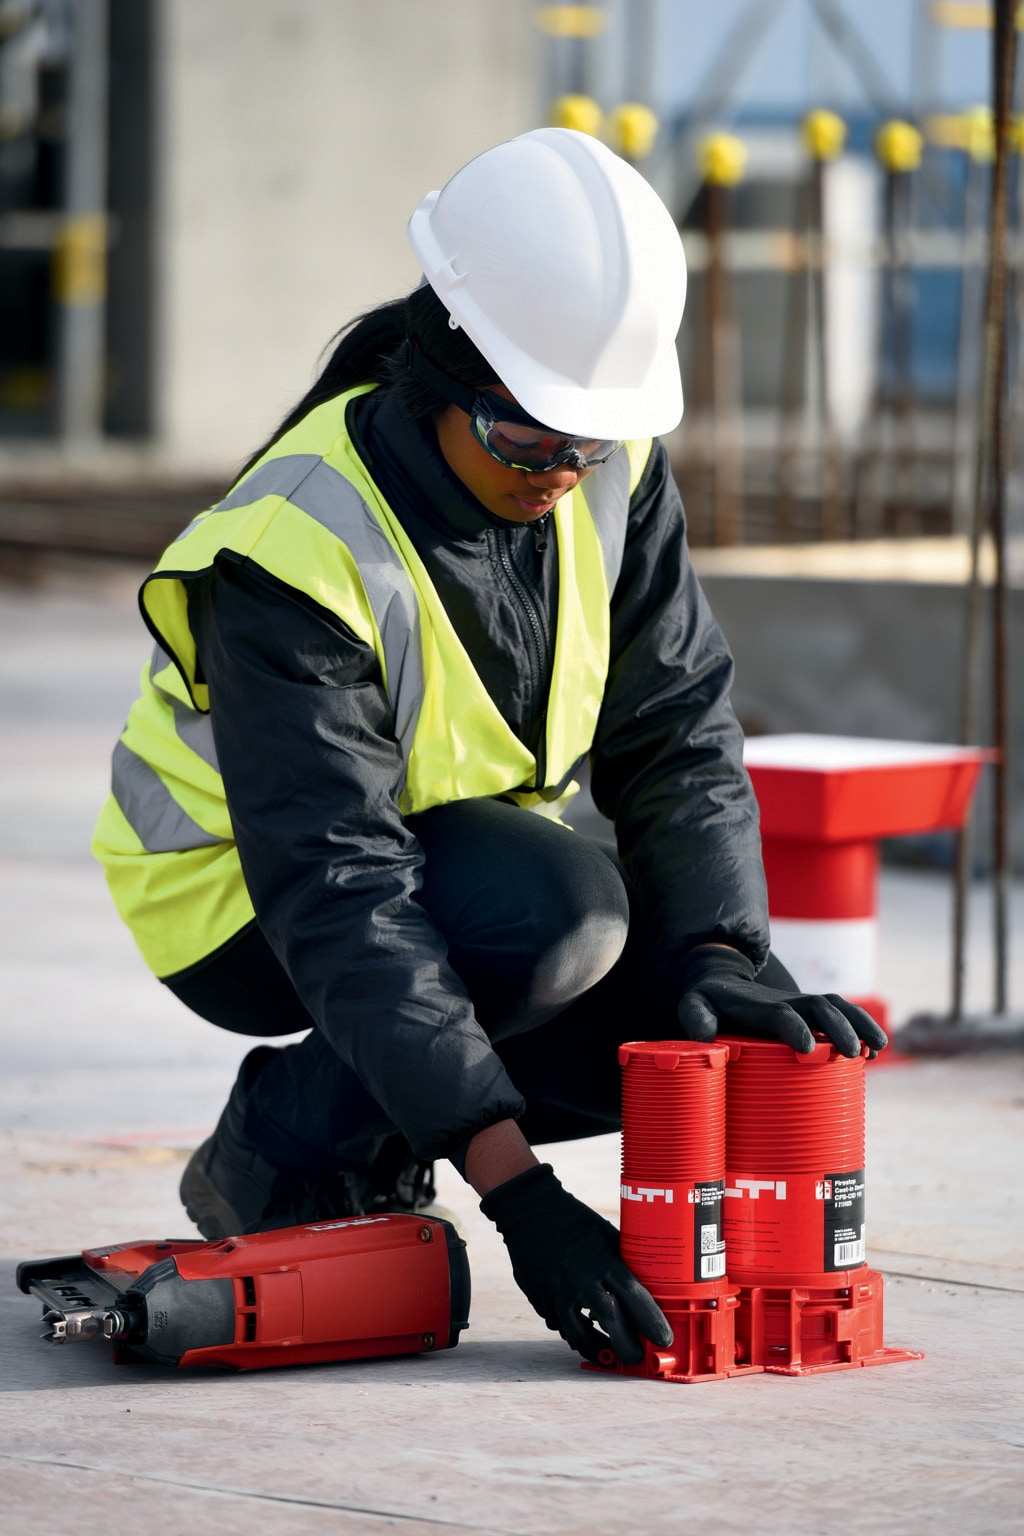 Hilti Firestop and Fire protection Systems